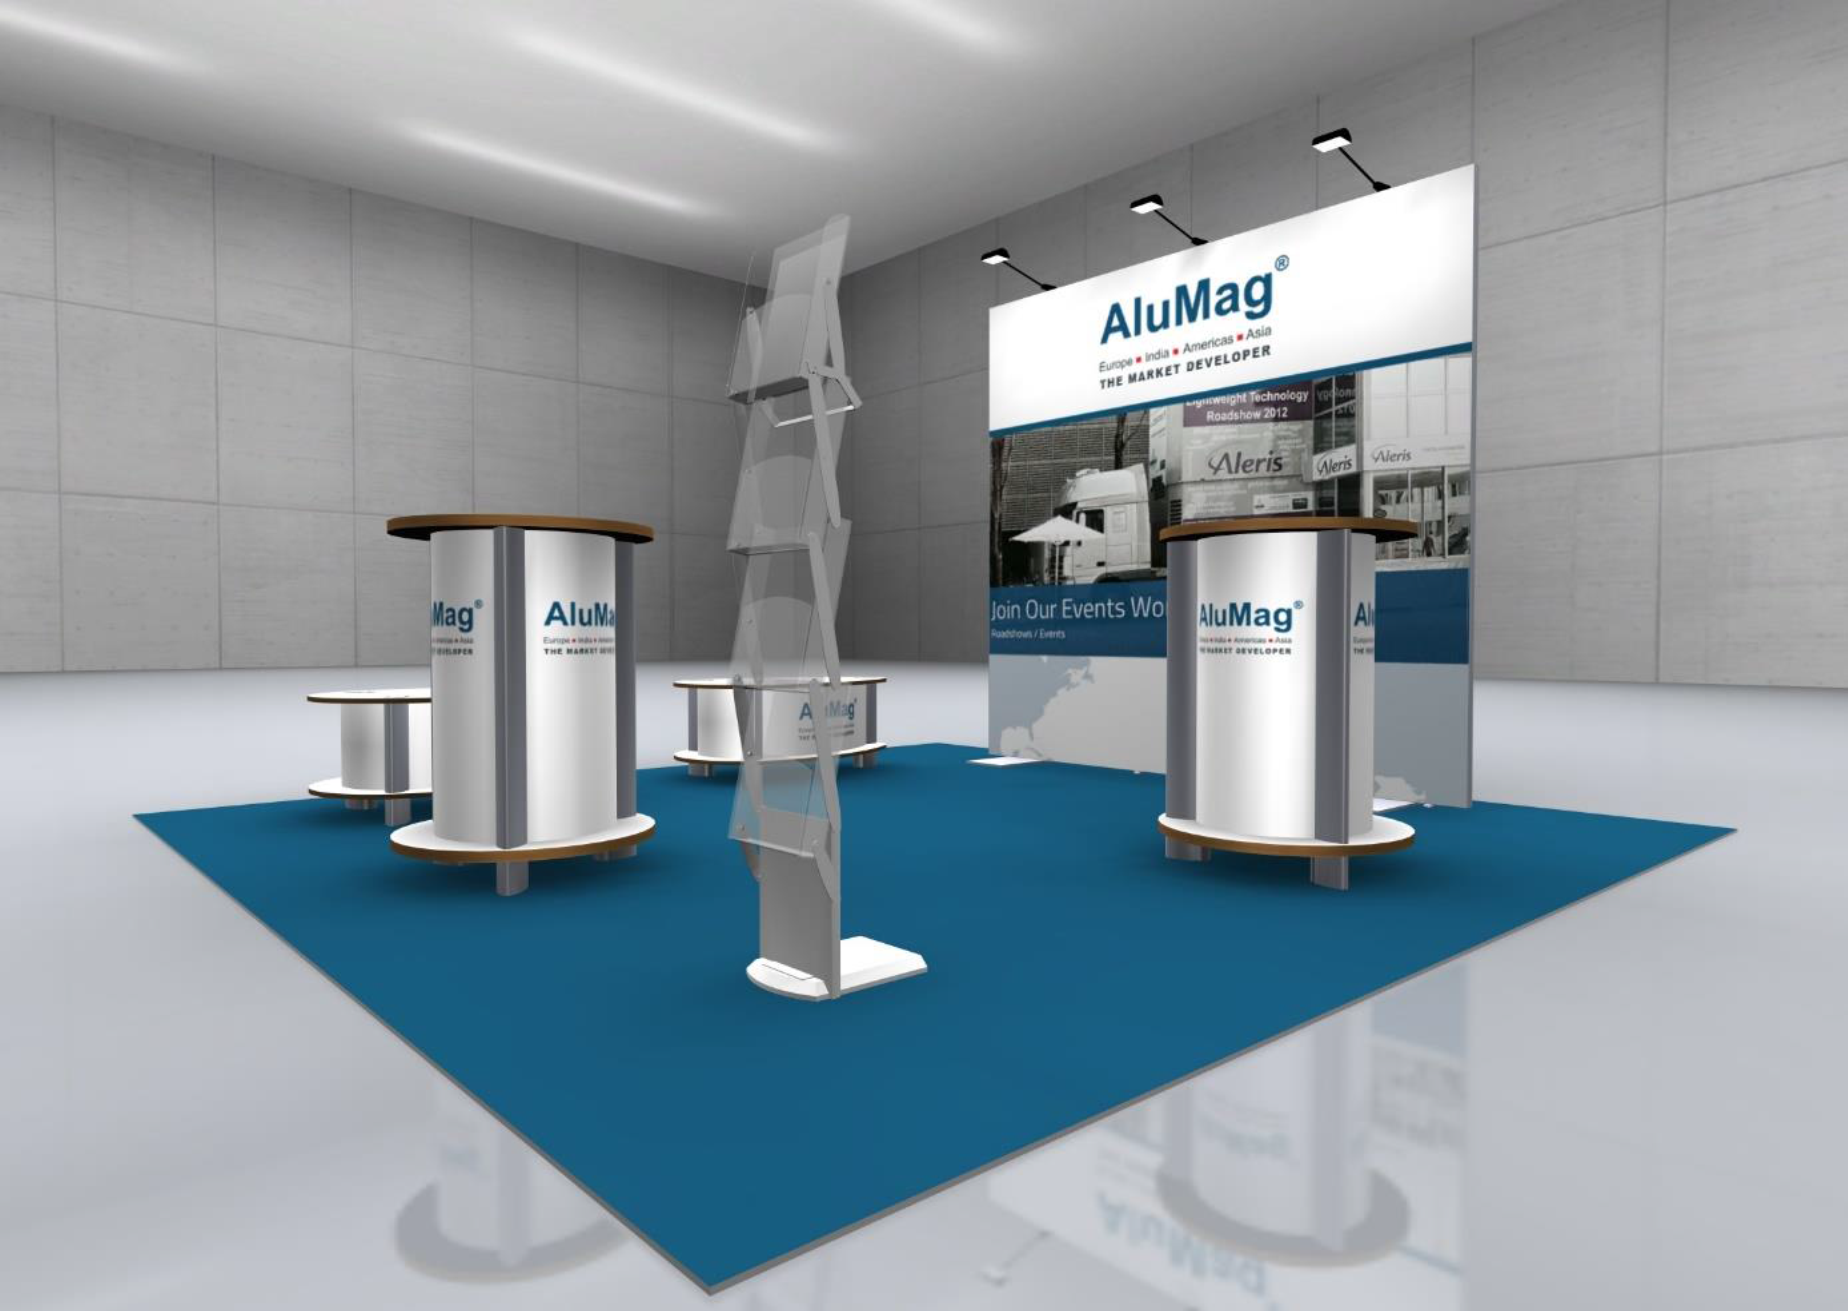 Symposium AluMag Booth System Concept II 1